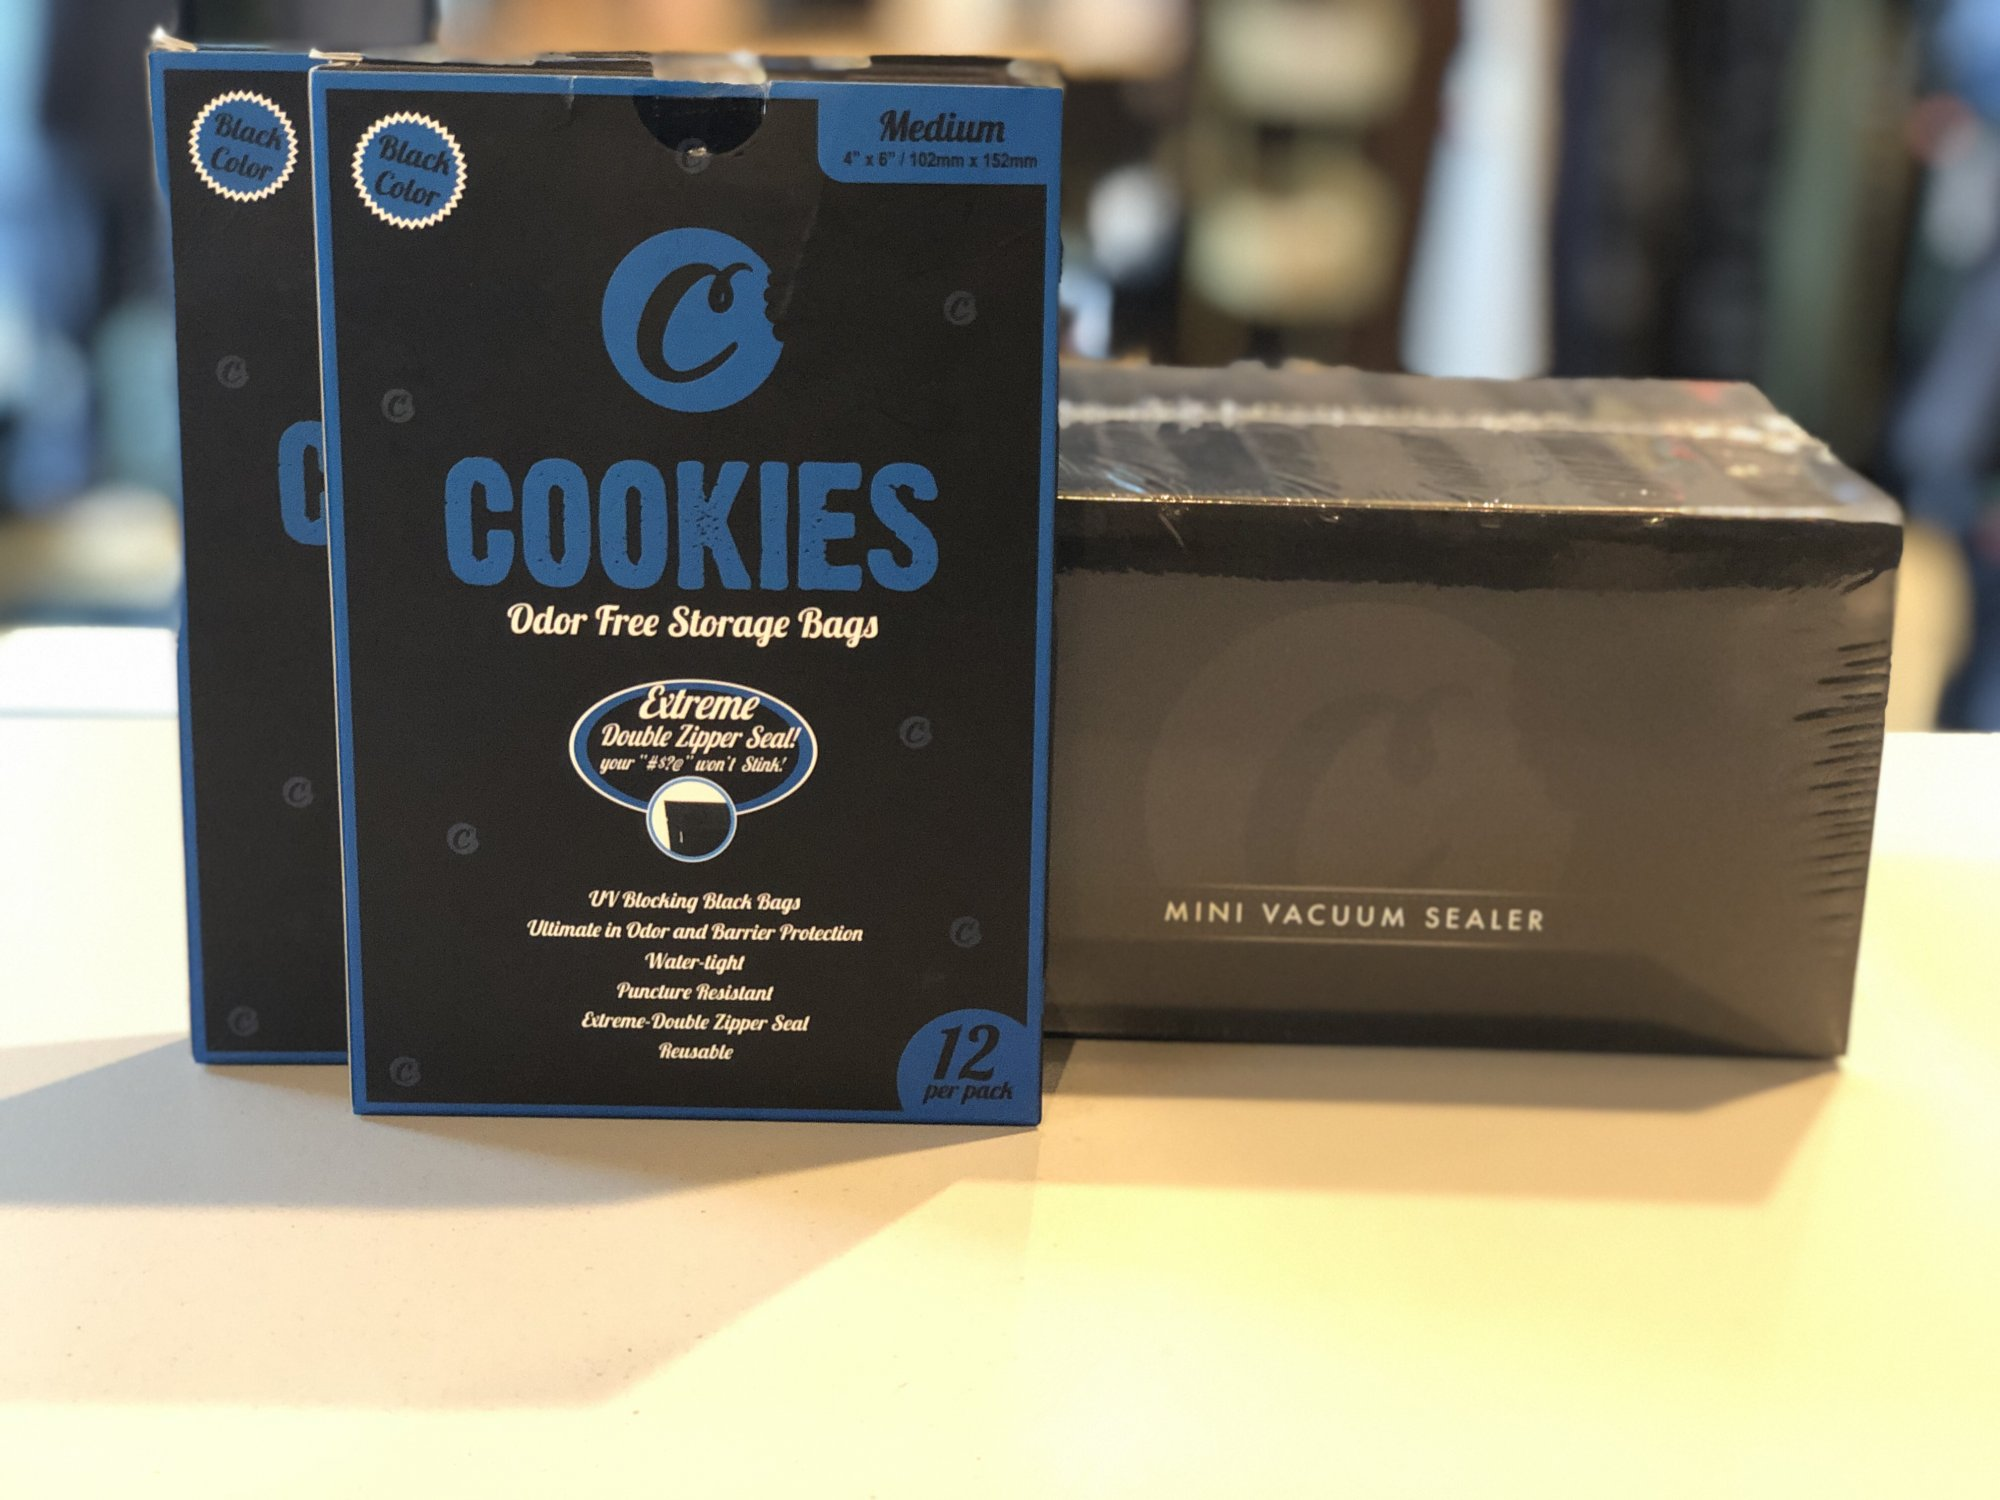 Cookies mini vacuum sealer